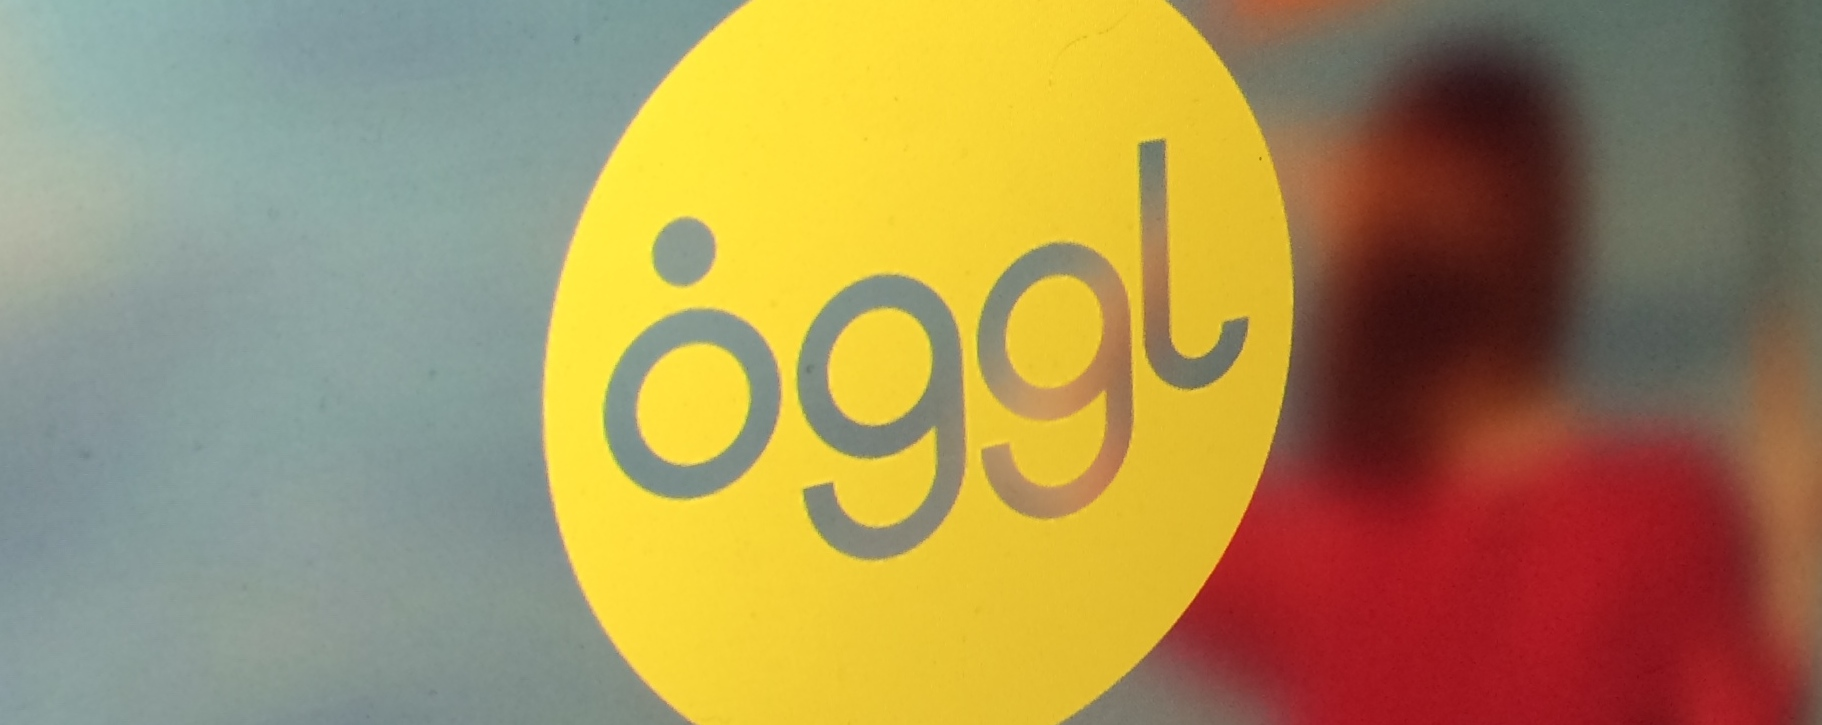 Oggl for iPad: Even More Fun with Photo Filters